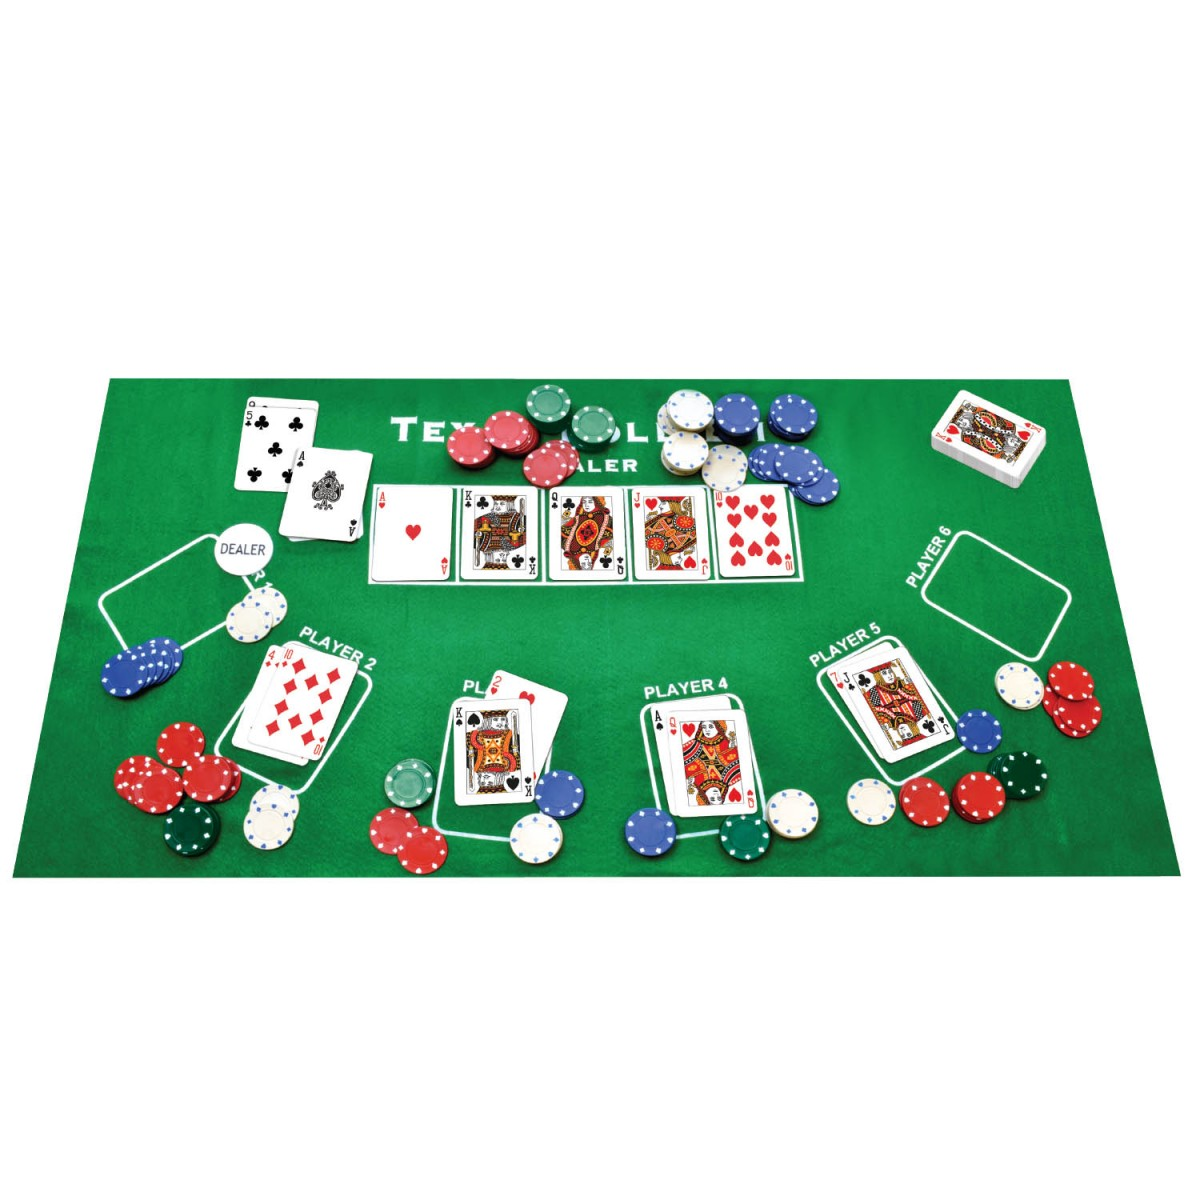 Governor of poker 1 full version pc